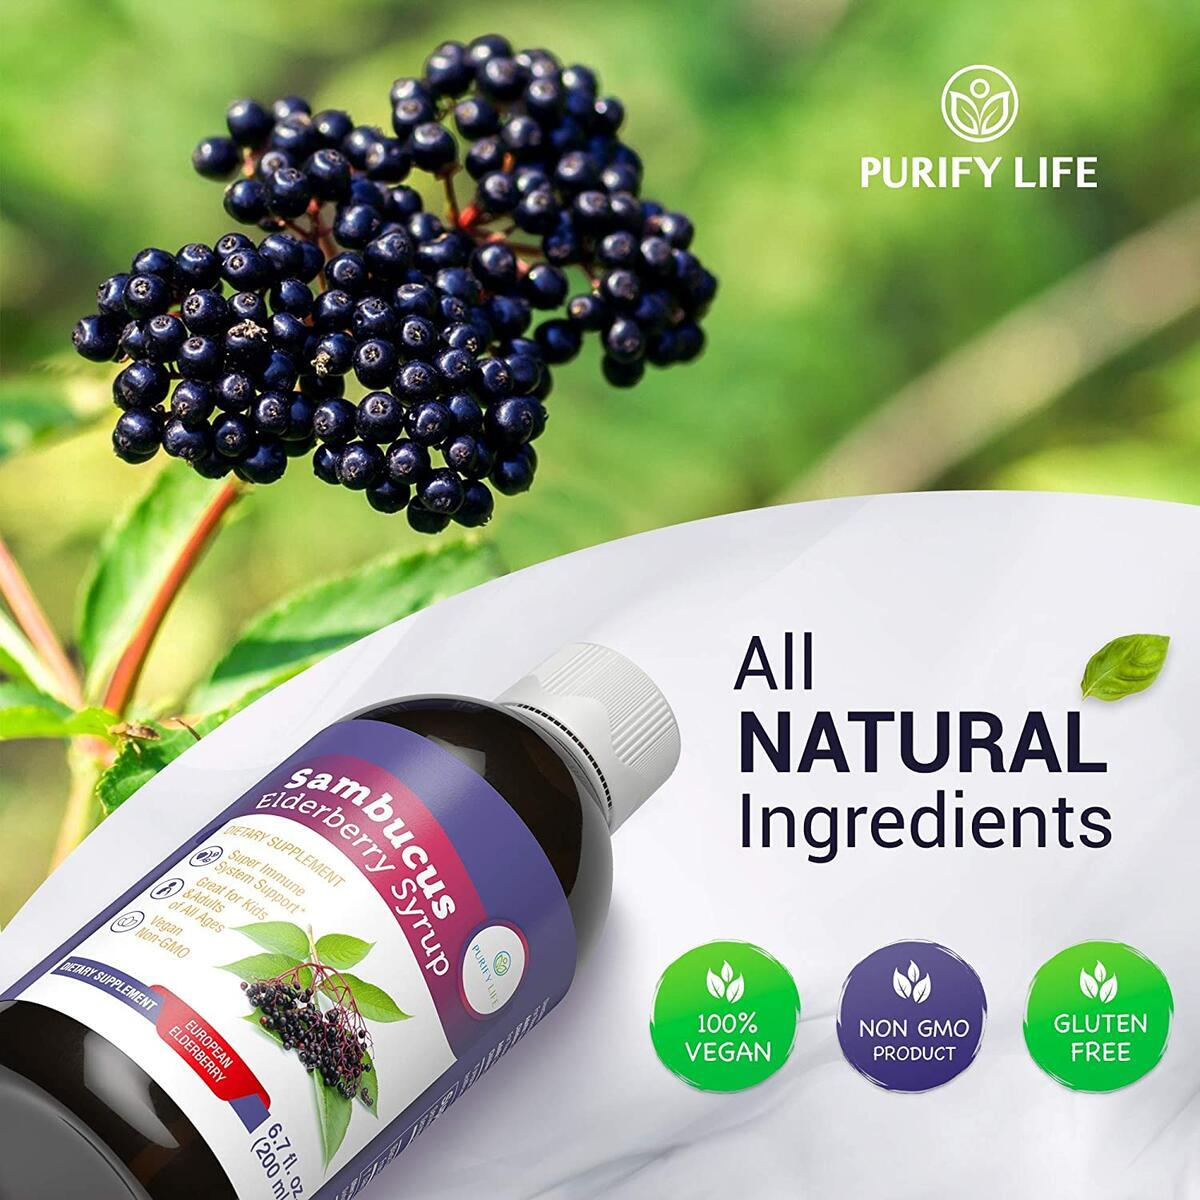 Elderberry Syrup for Kids & Adults - Immune System Support with Organic Sambucus Nigra Liquid Extract for Cold and Allergy - Antioxidant to Replace Capsules, Tablets, Gummies, Pills - (6.7 fl oz)